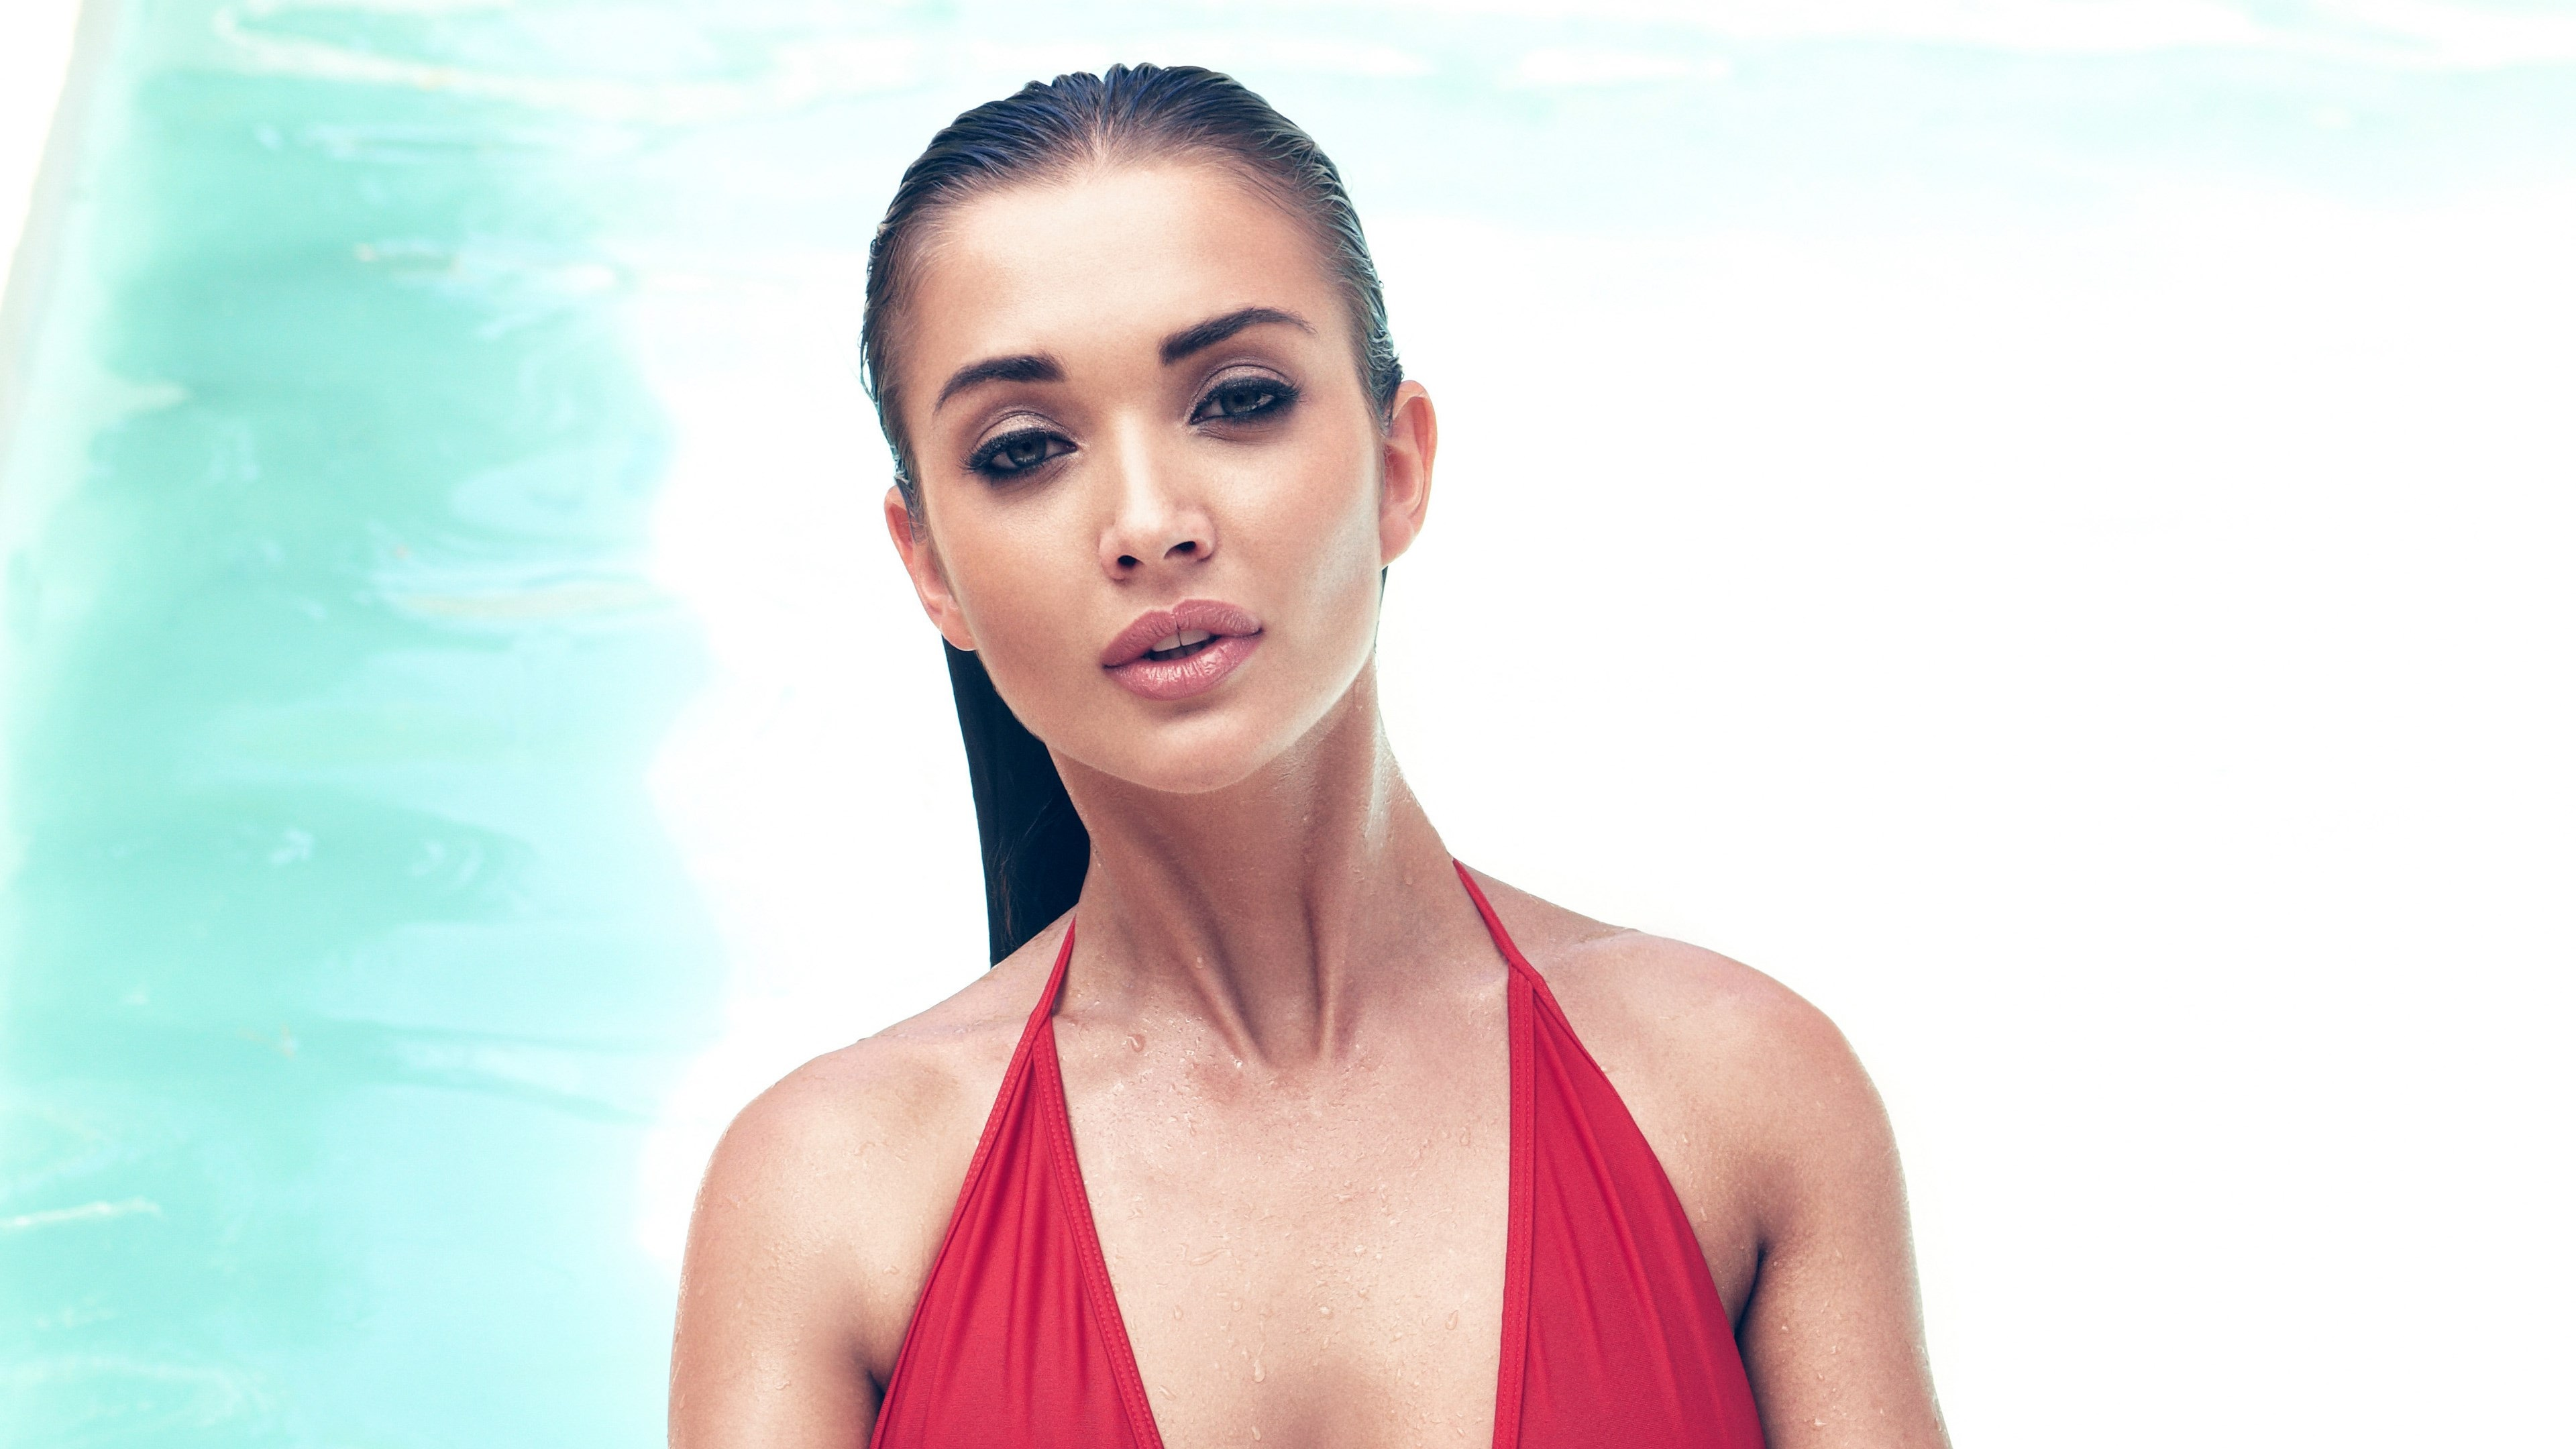 amy jackson model widescreen hd wallpaper 64633